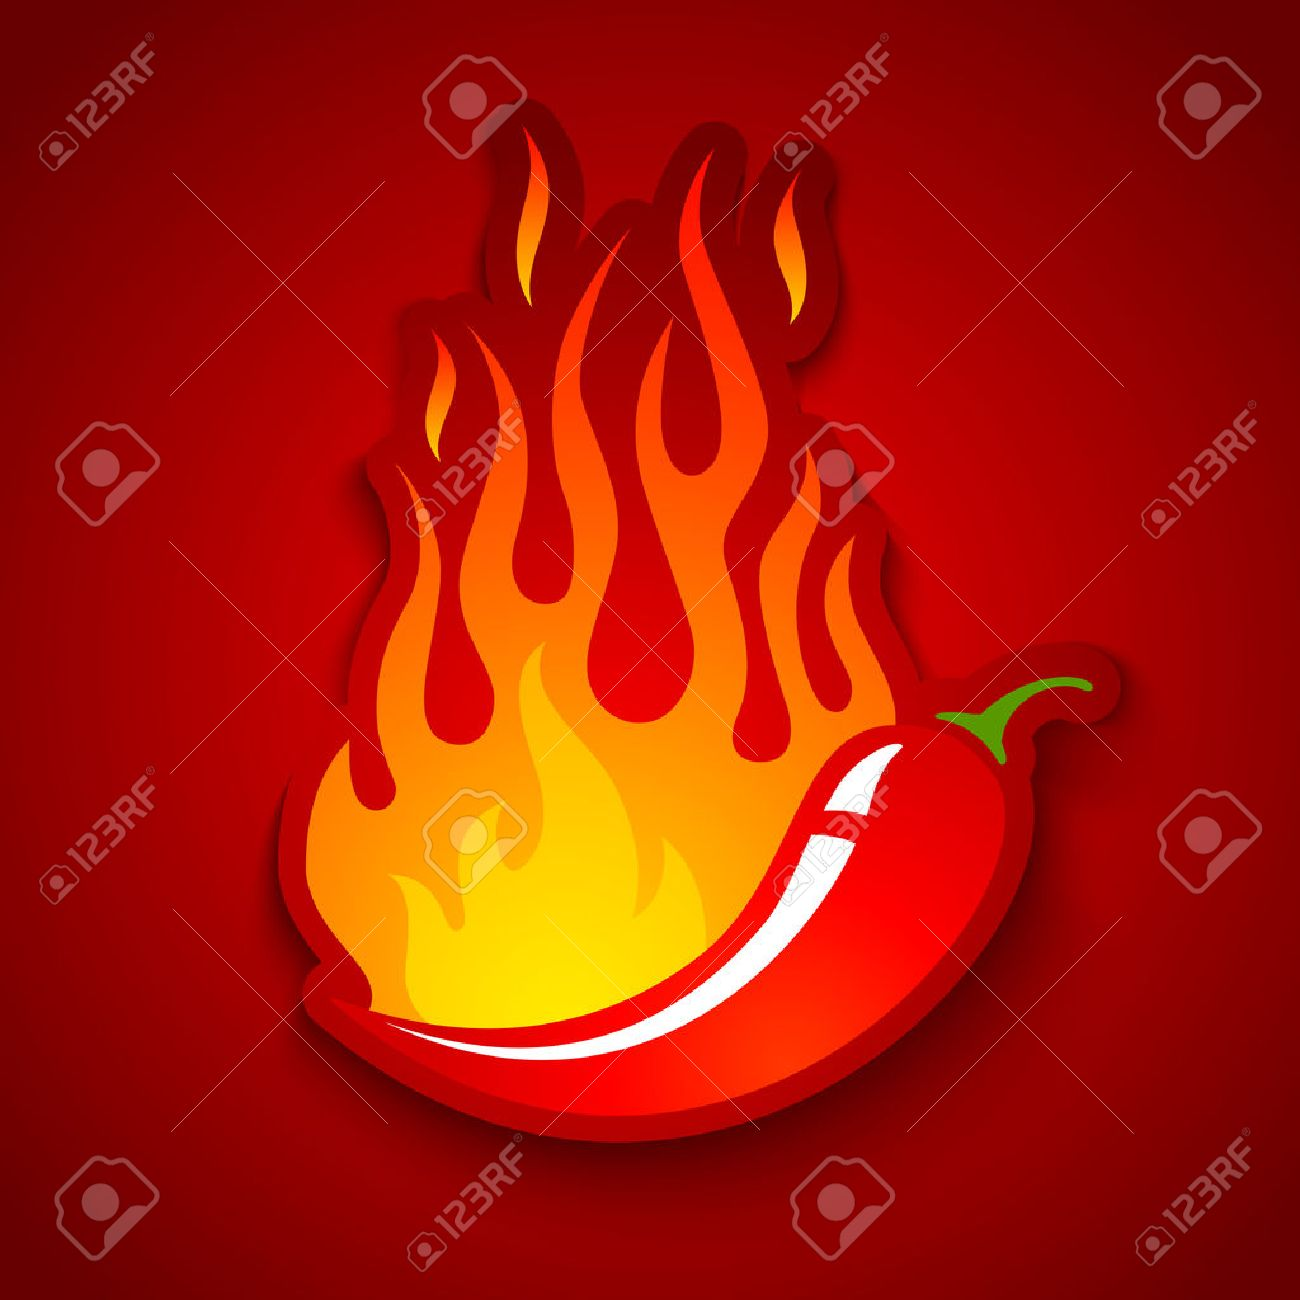 Vector illustration of a chili pepper in fire - 46616944